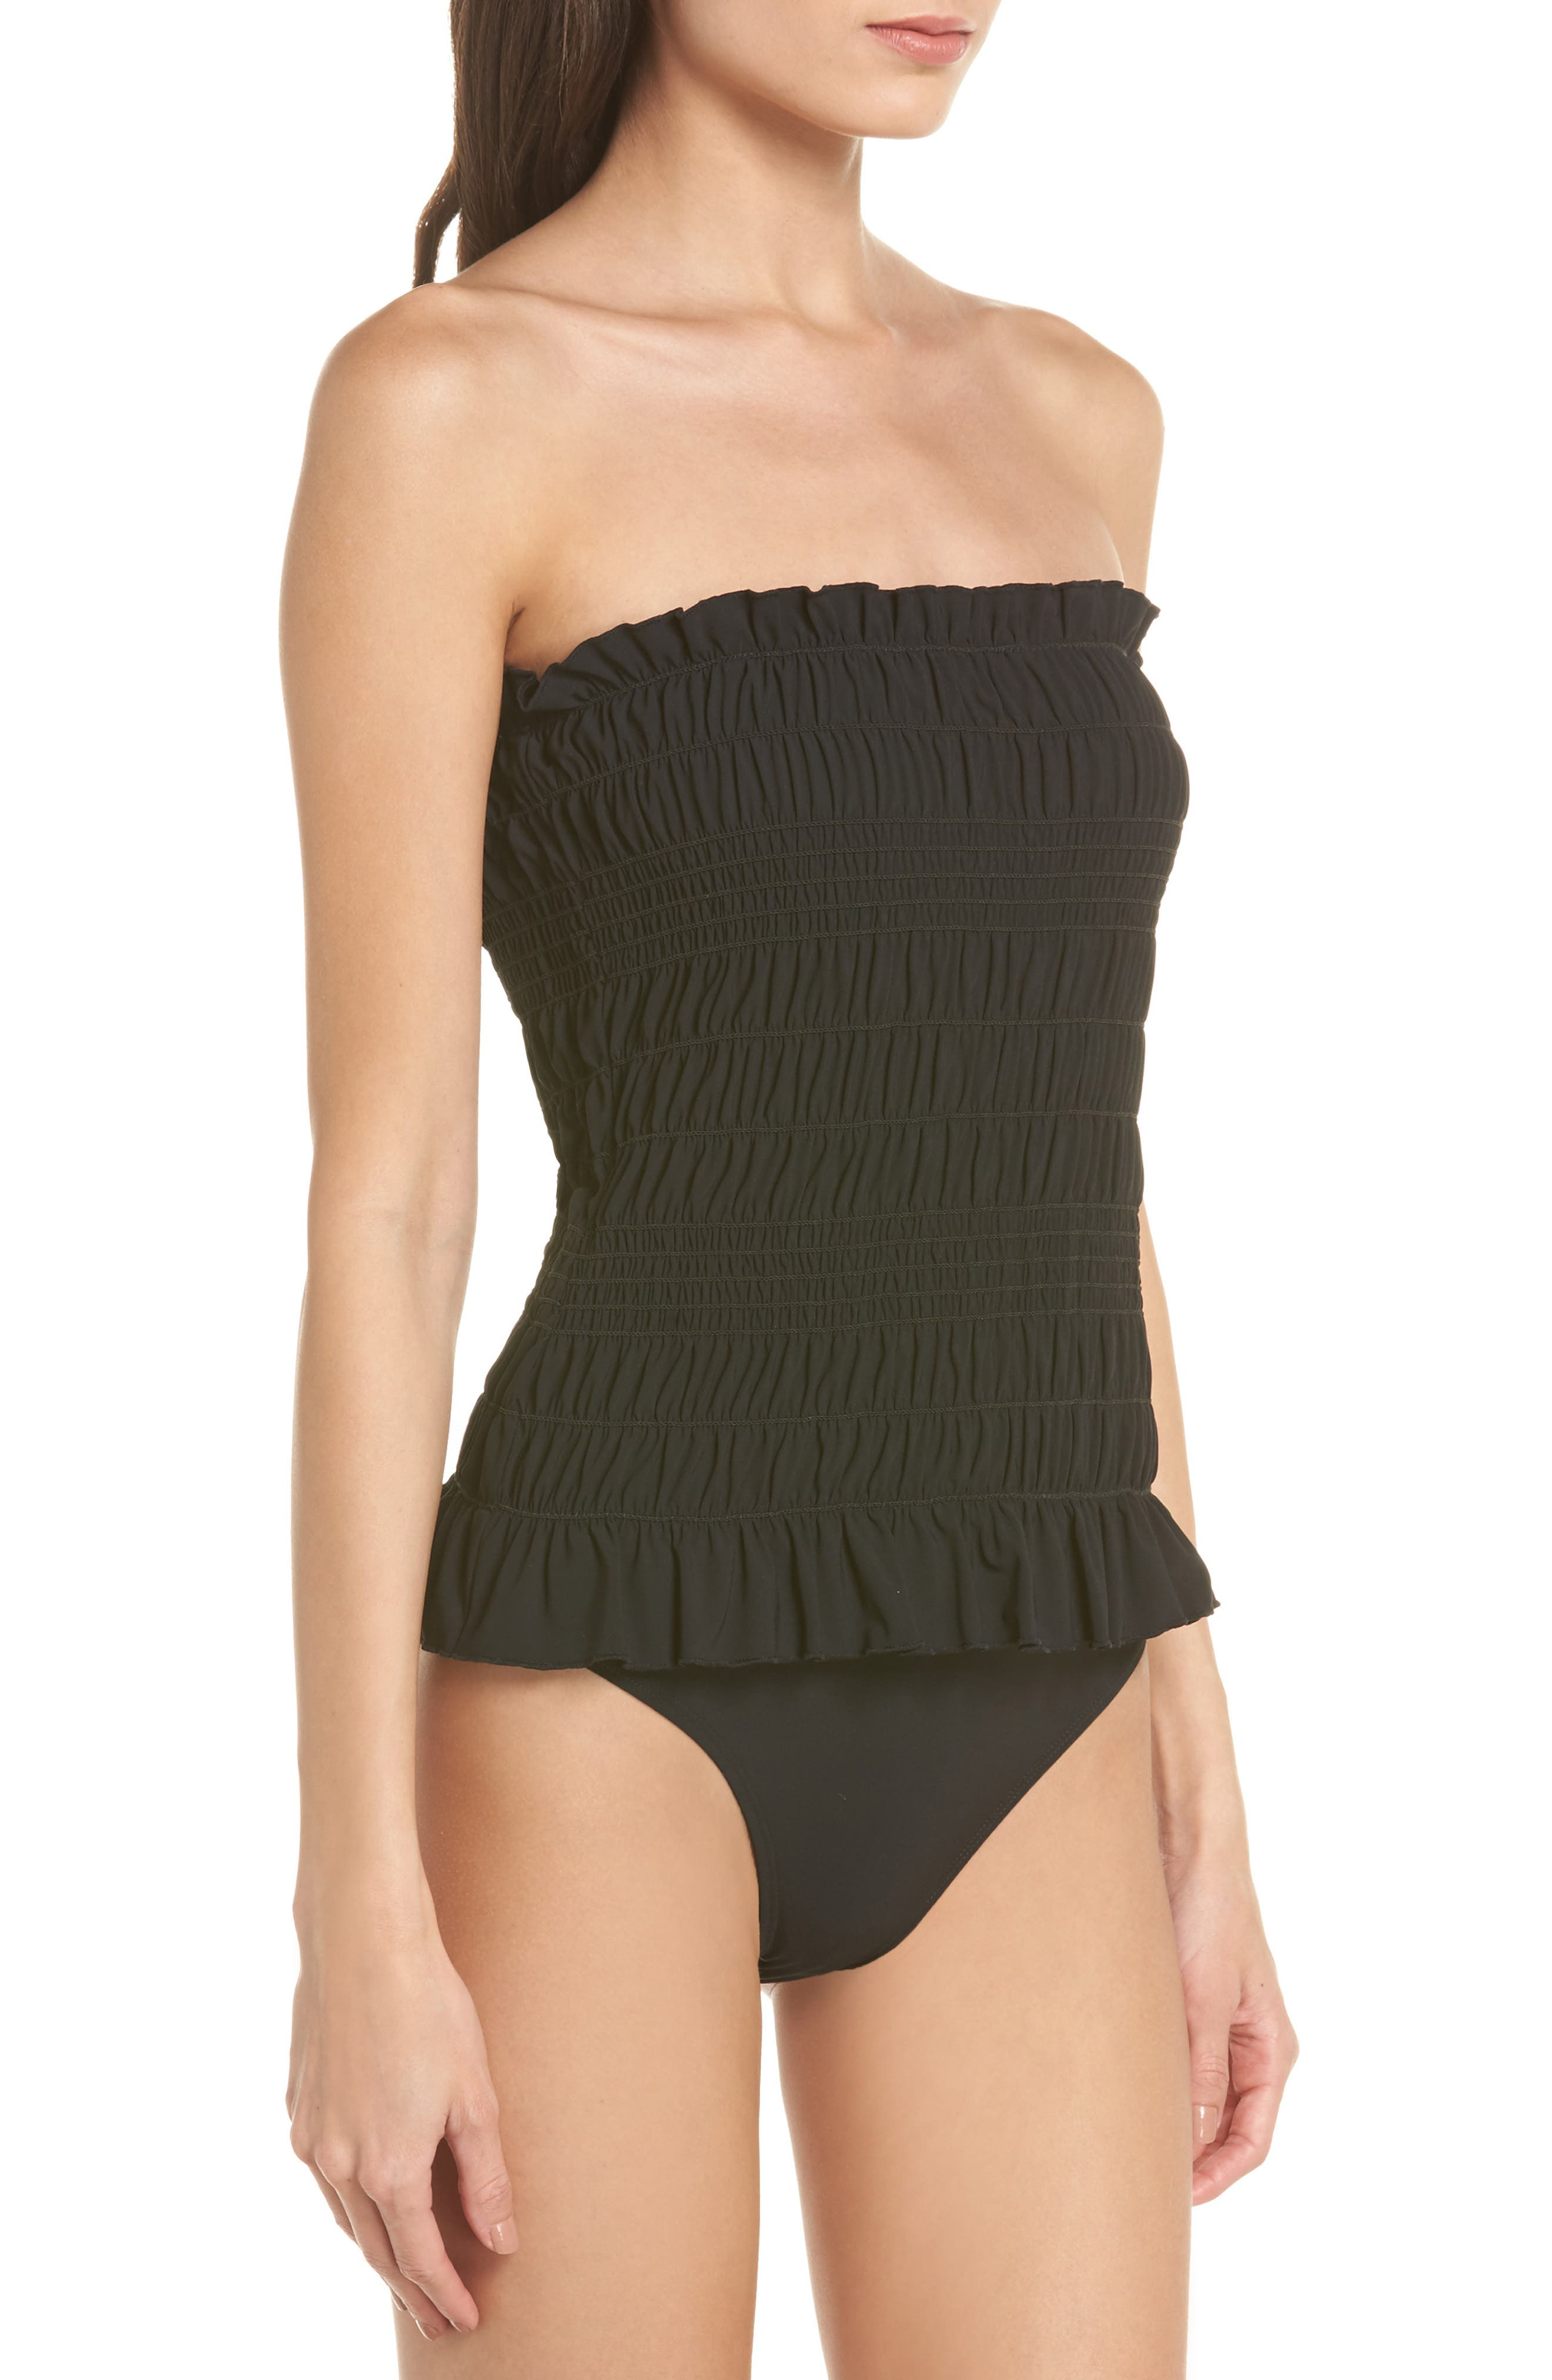 Costa Smocked One-Piece Swimsuit,                             Alternate thumbnail 4, color,                             Black / Black